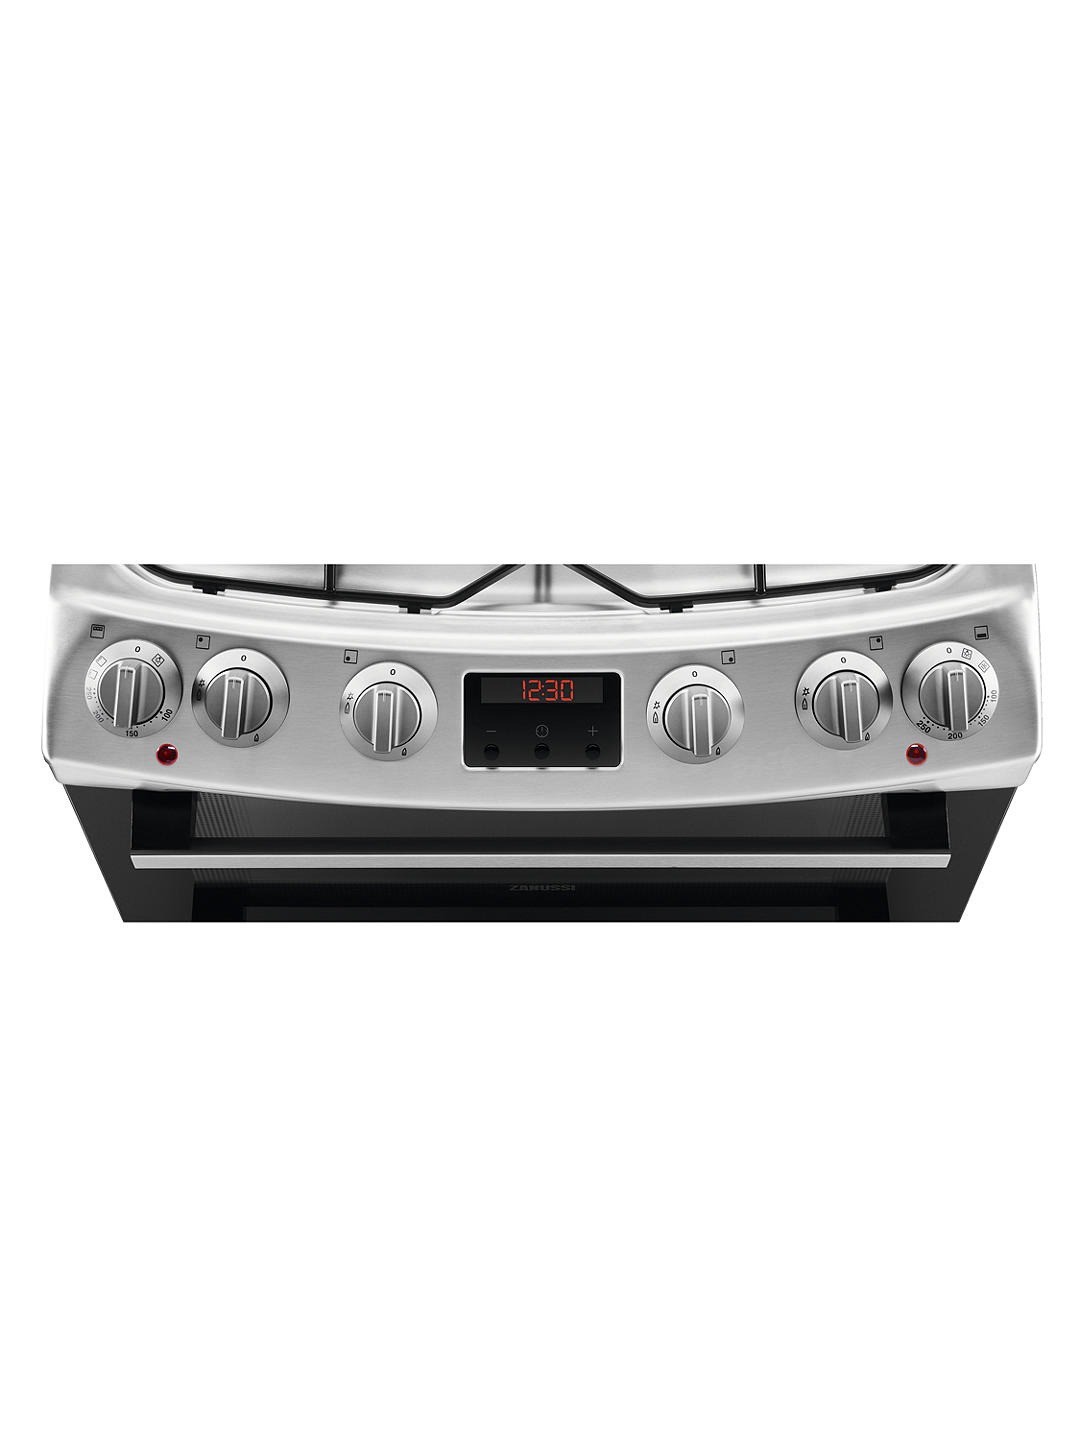 Buy Zanussi ZCK66350XA Double Dual Fuel Cooker, 60cm Wide, A Energy Rating, Stainless Steel Online at johnlewis.com